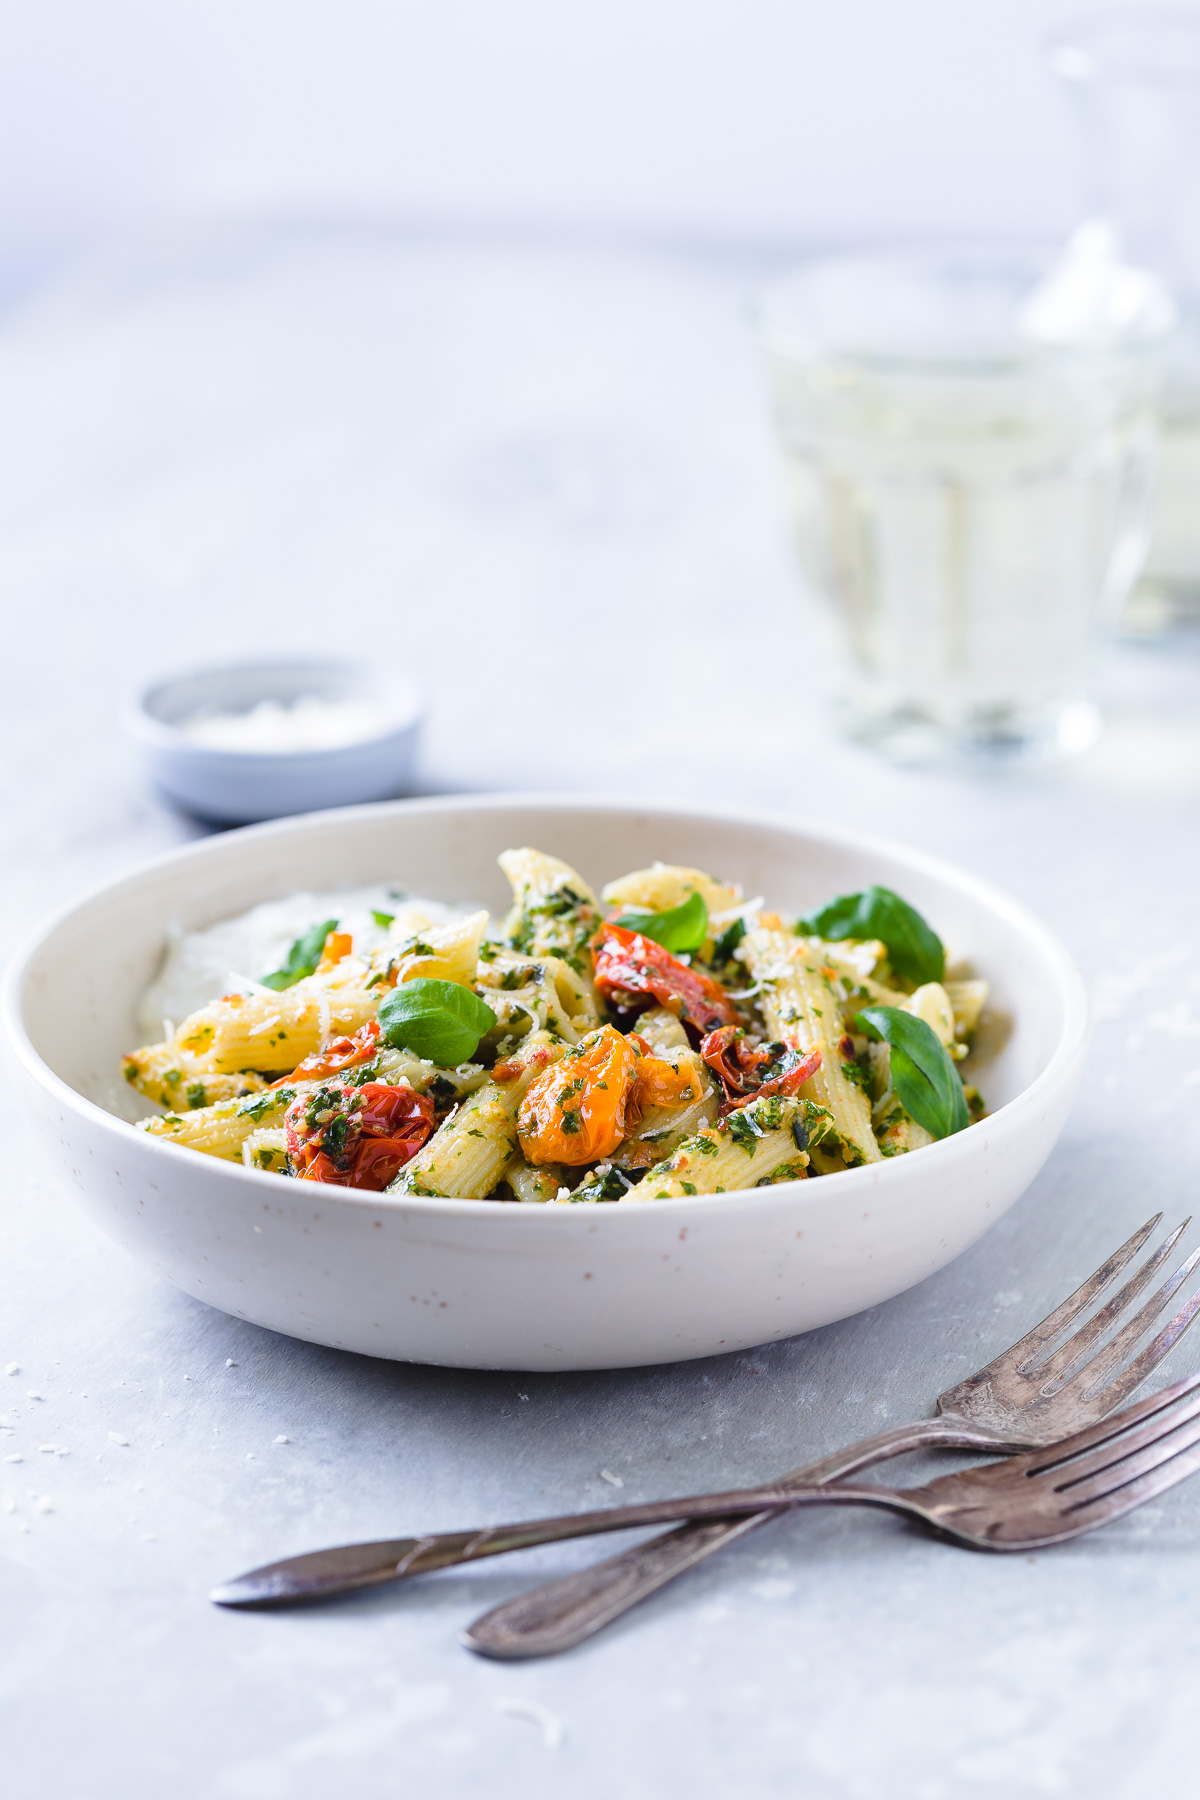 Penne tossed with kale pesto and roasted tomatoes and a serving of burrata cheese in a white bowl.